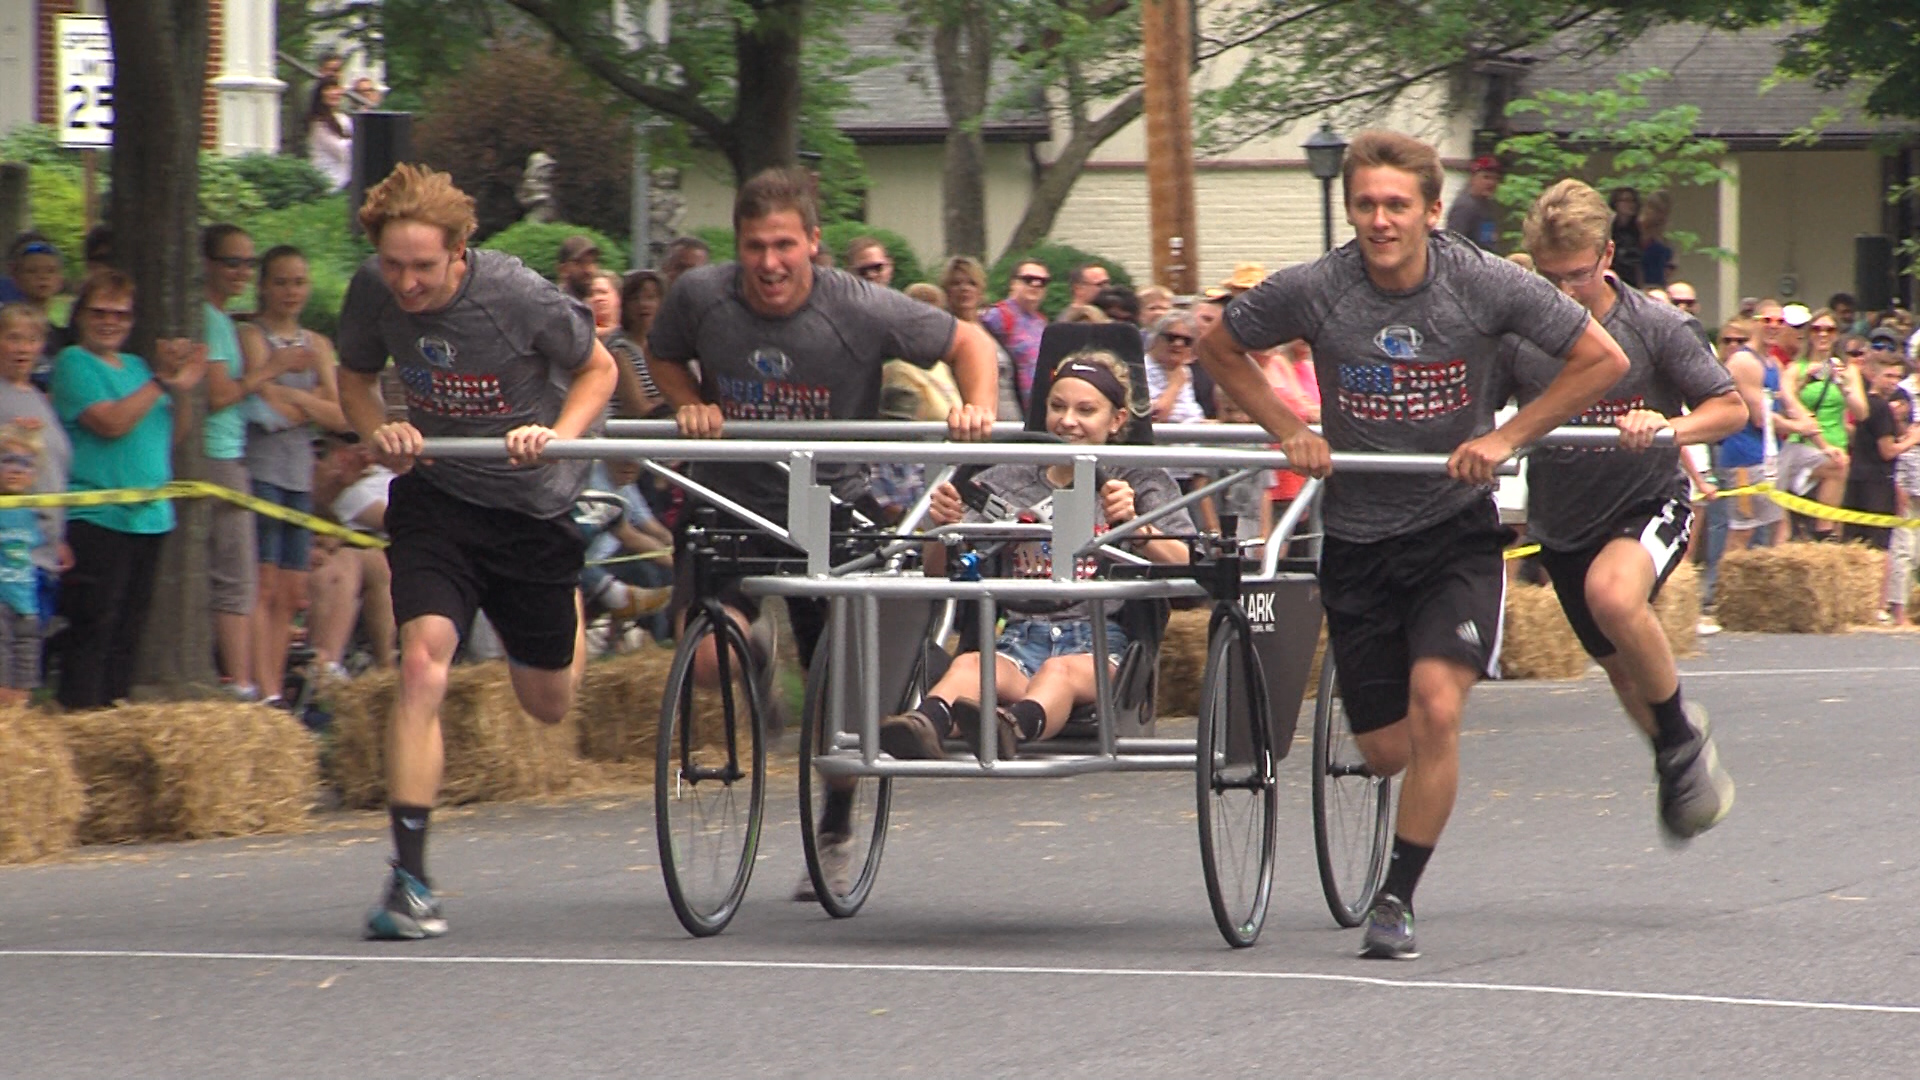 Bedford Bed Races Pic for WEB_1528598555535.jpg.jpg